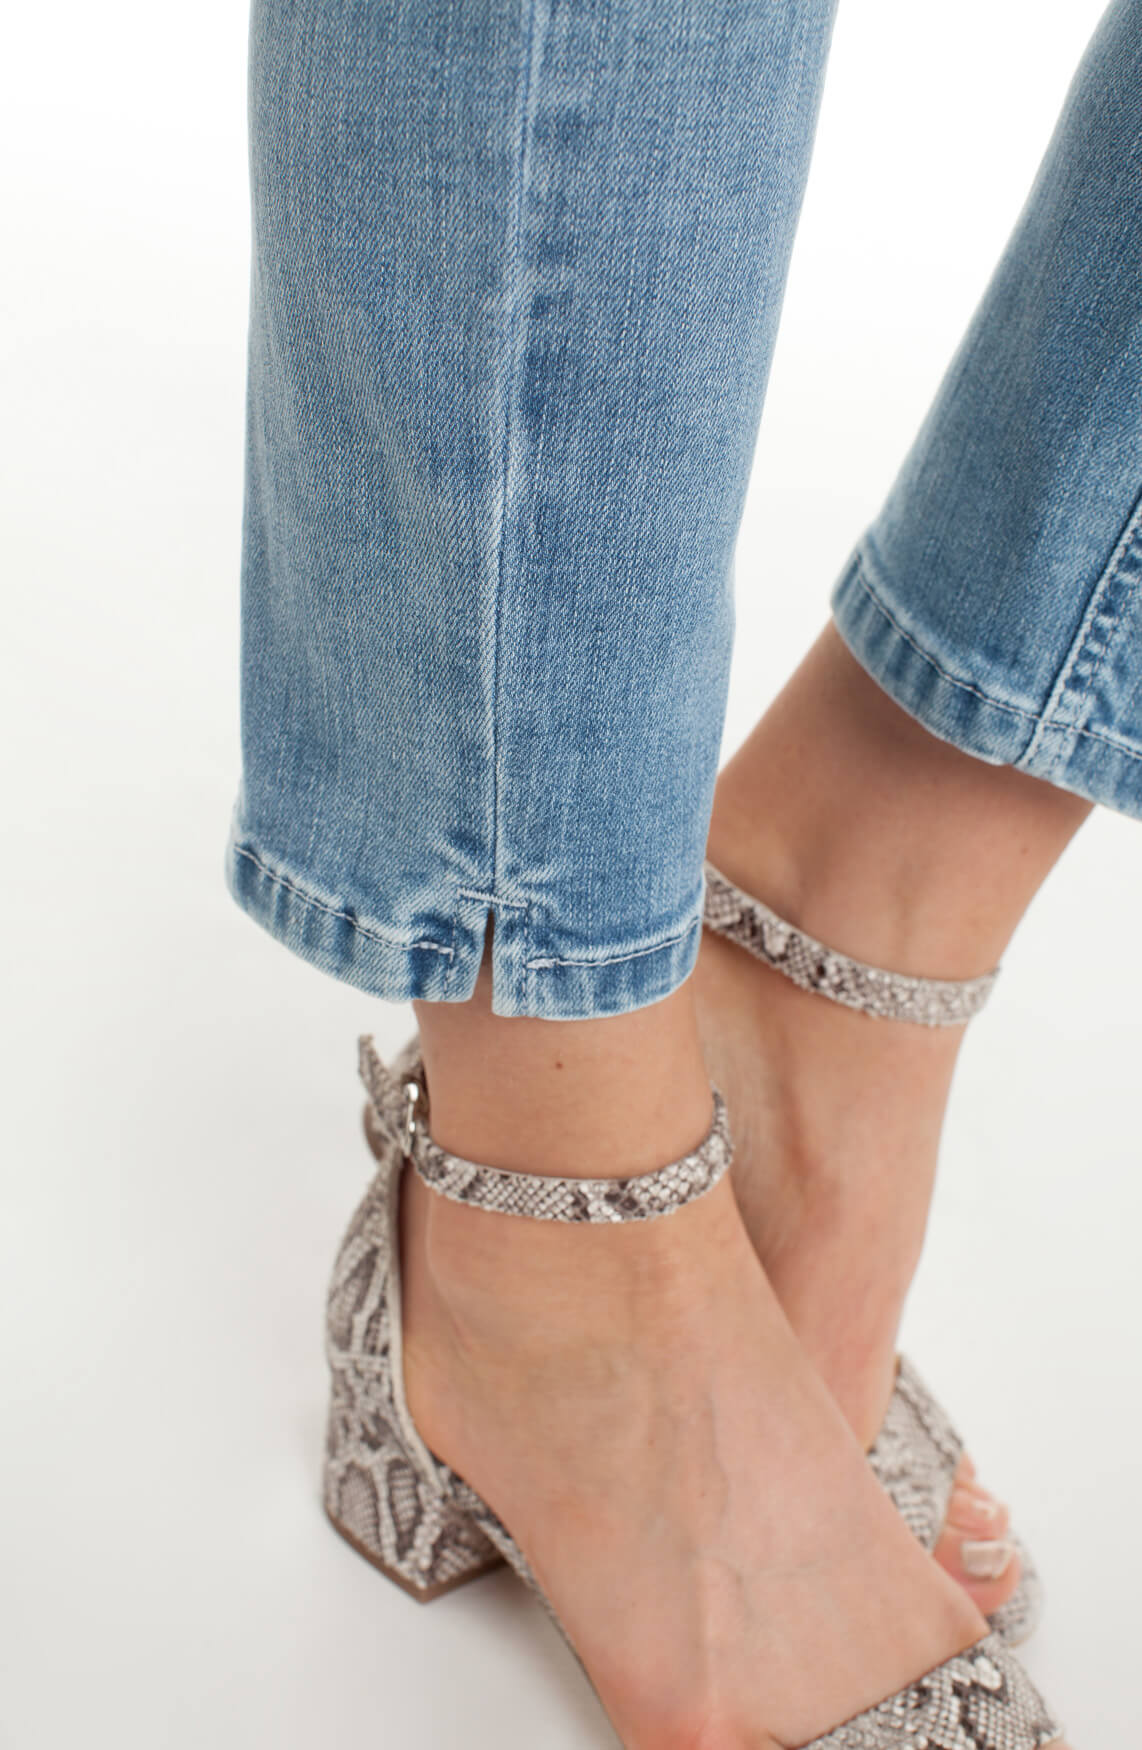 Cambio Dames Piper jeans met studs detail Blauw